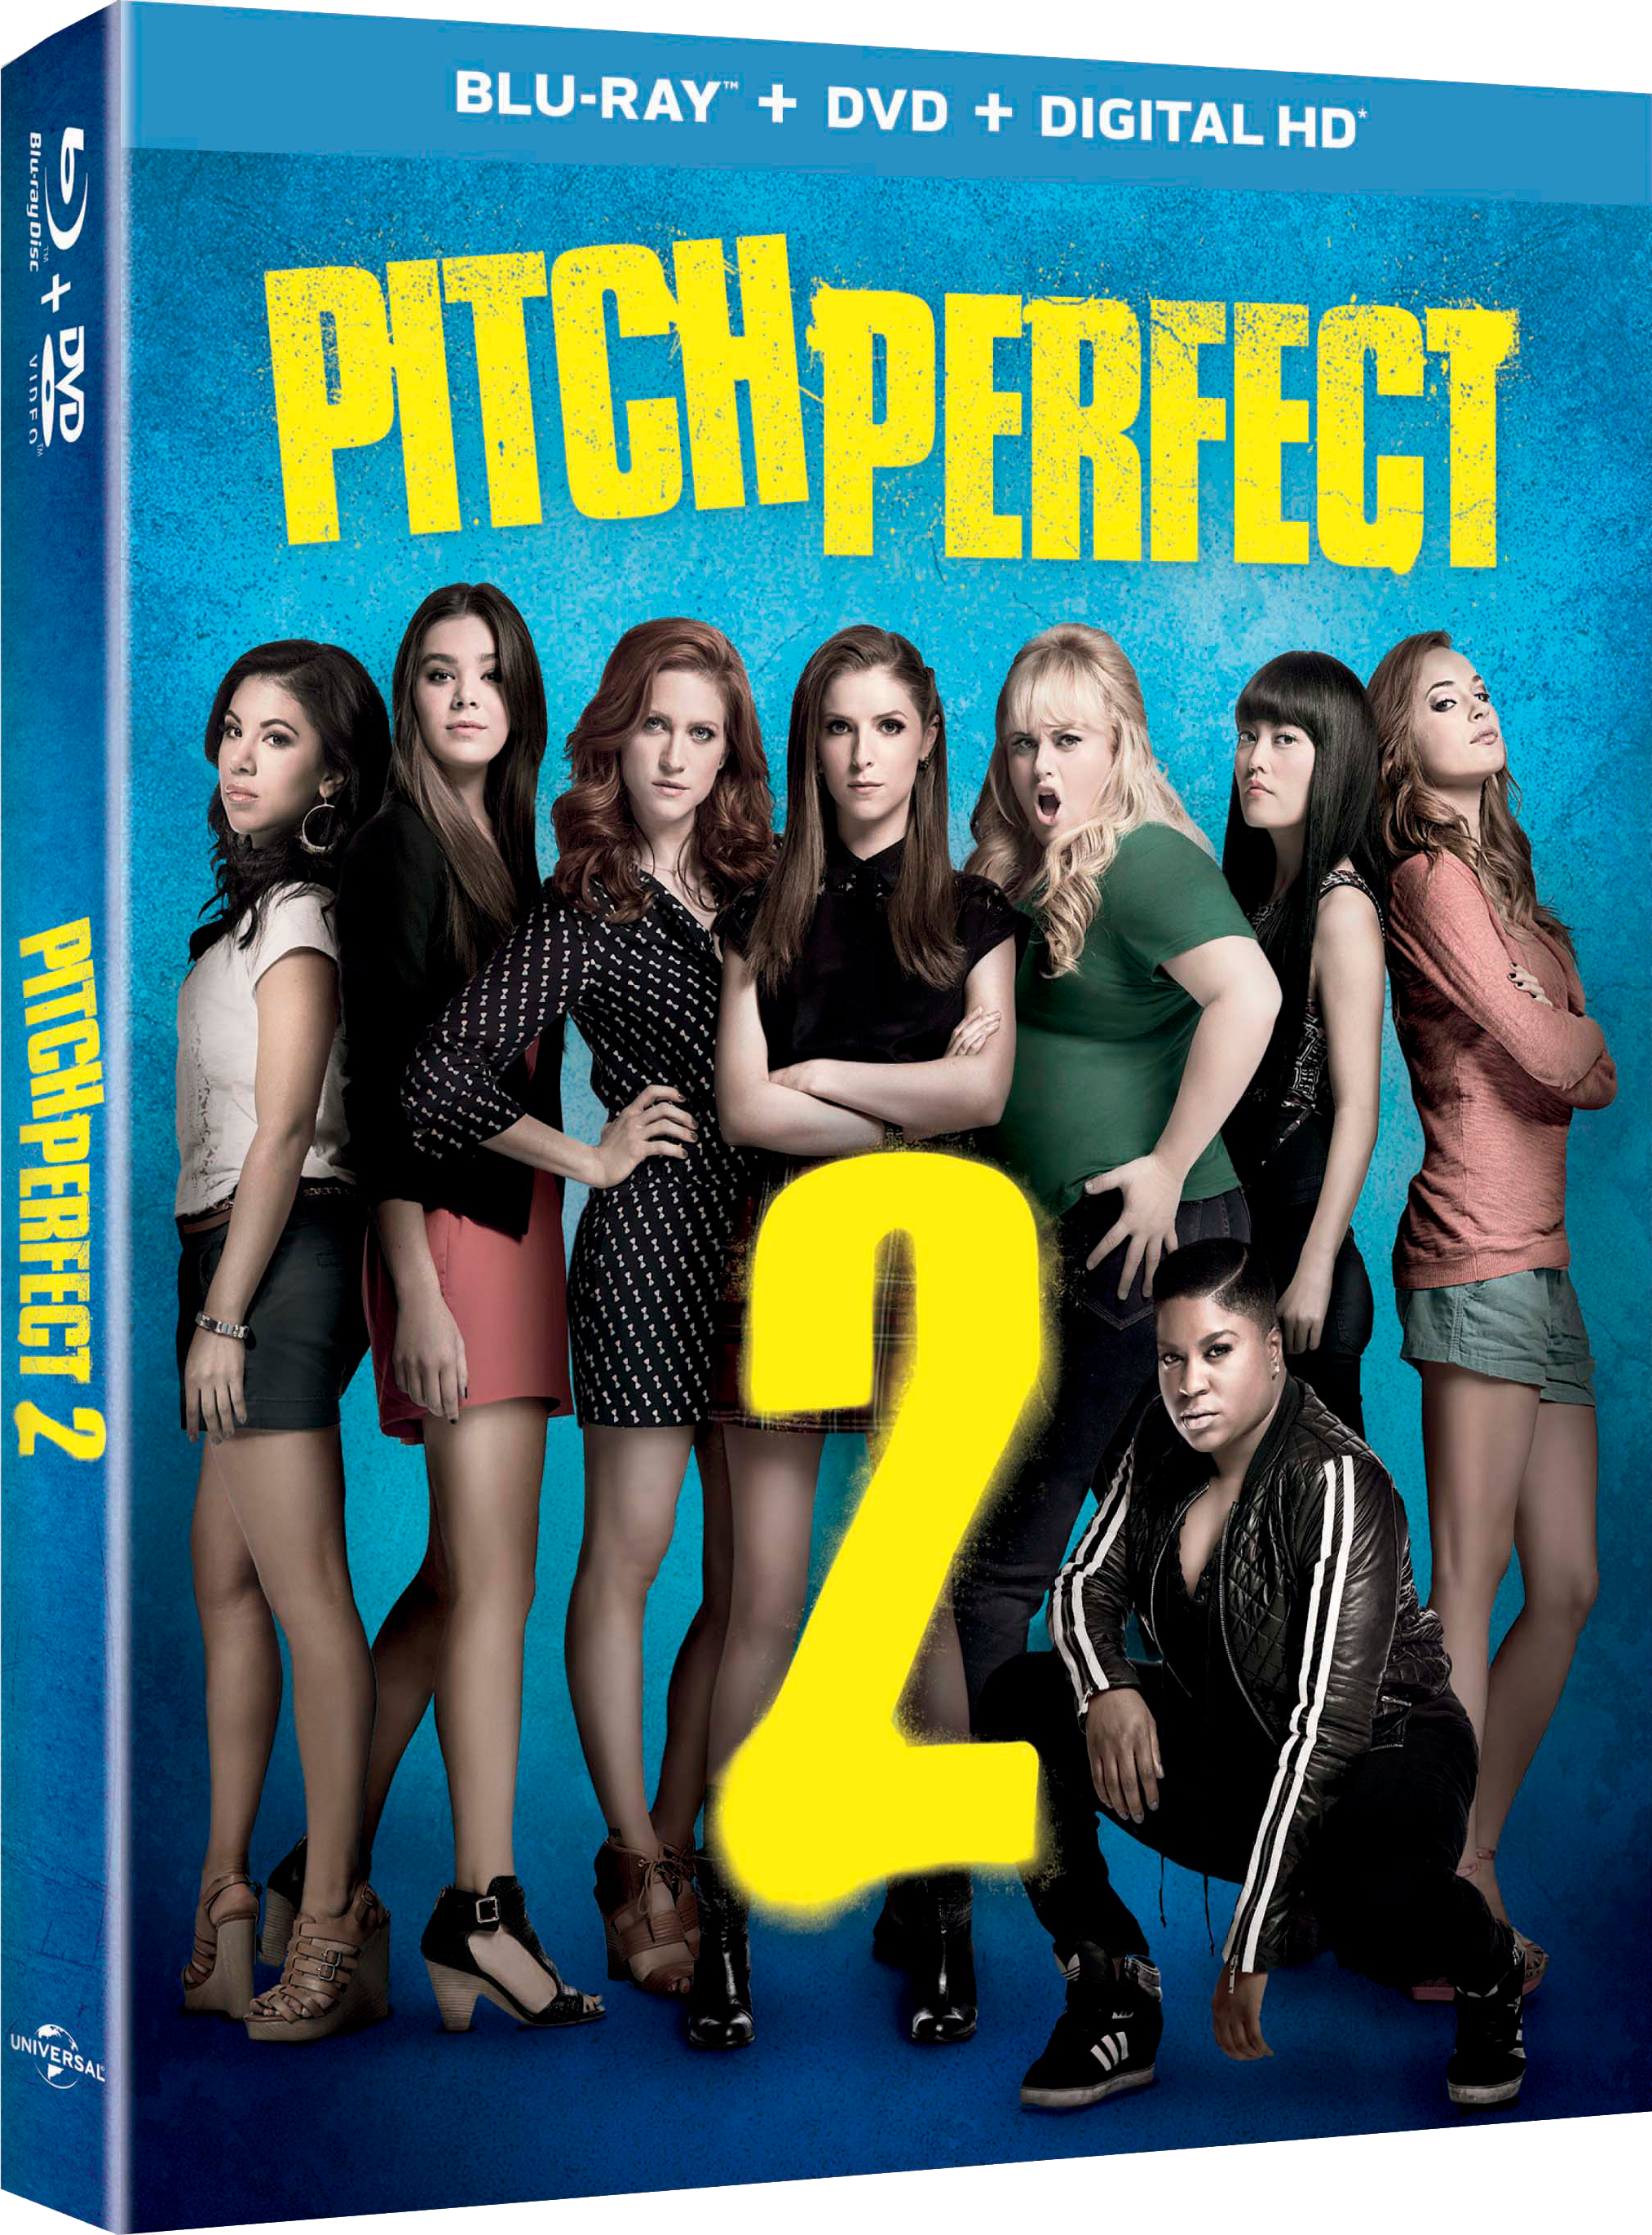 Pitch perfect 3 trailer movie site blu ray dvd digital pitch perfect 3 trailer movie site blu ray dvd digital out now voltagebd Choice Image